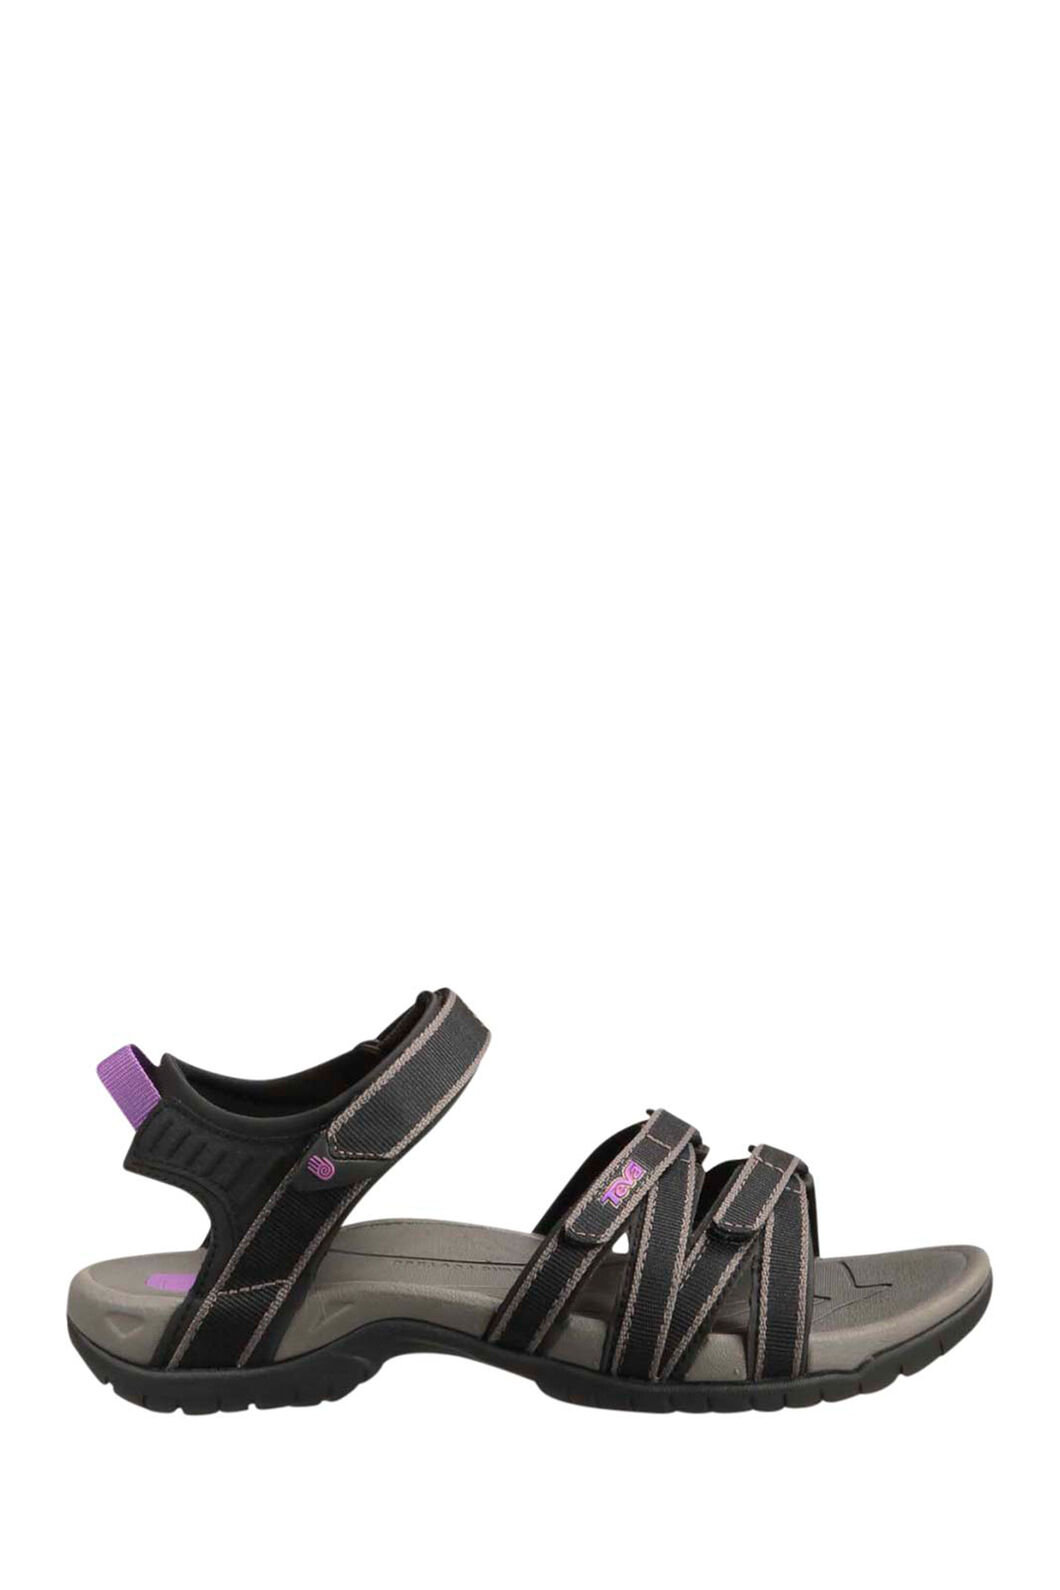 Teva Tirra TVA Sandals — Women's, Black/Grey, hi-res